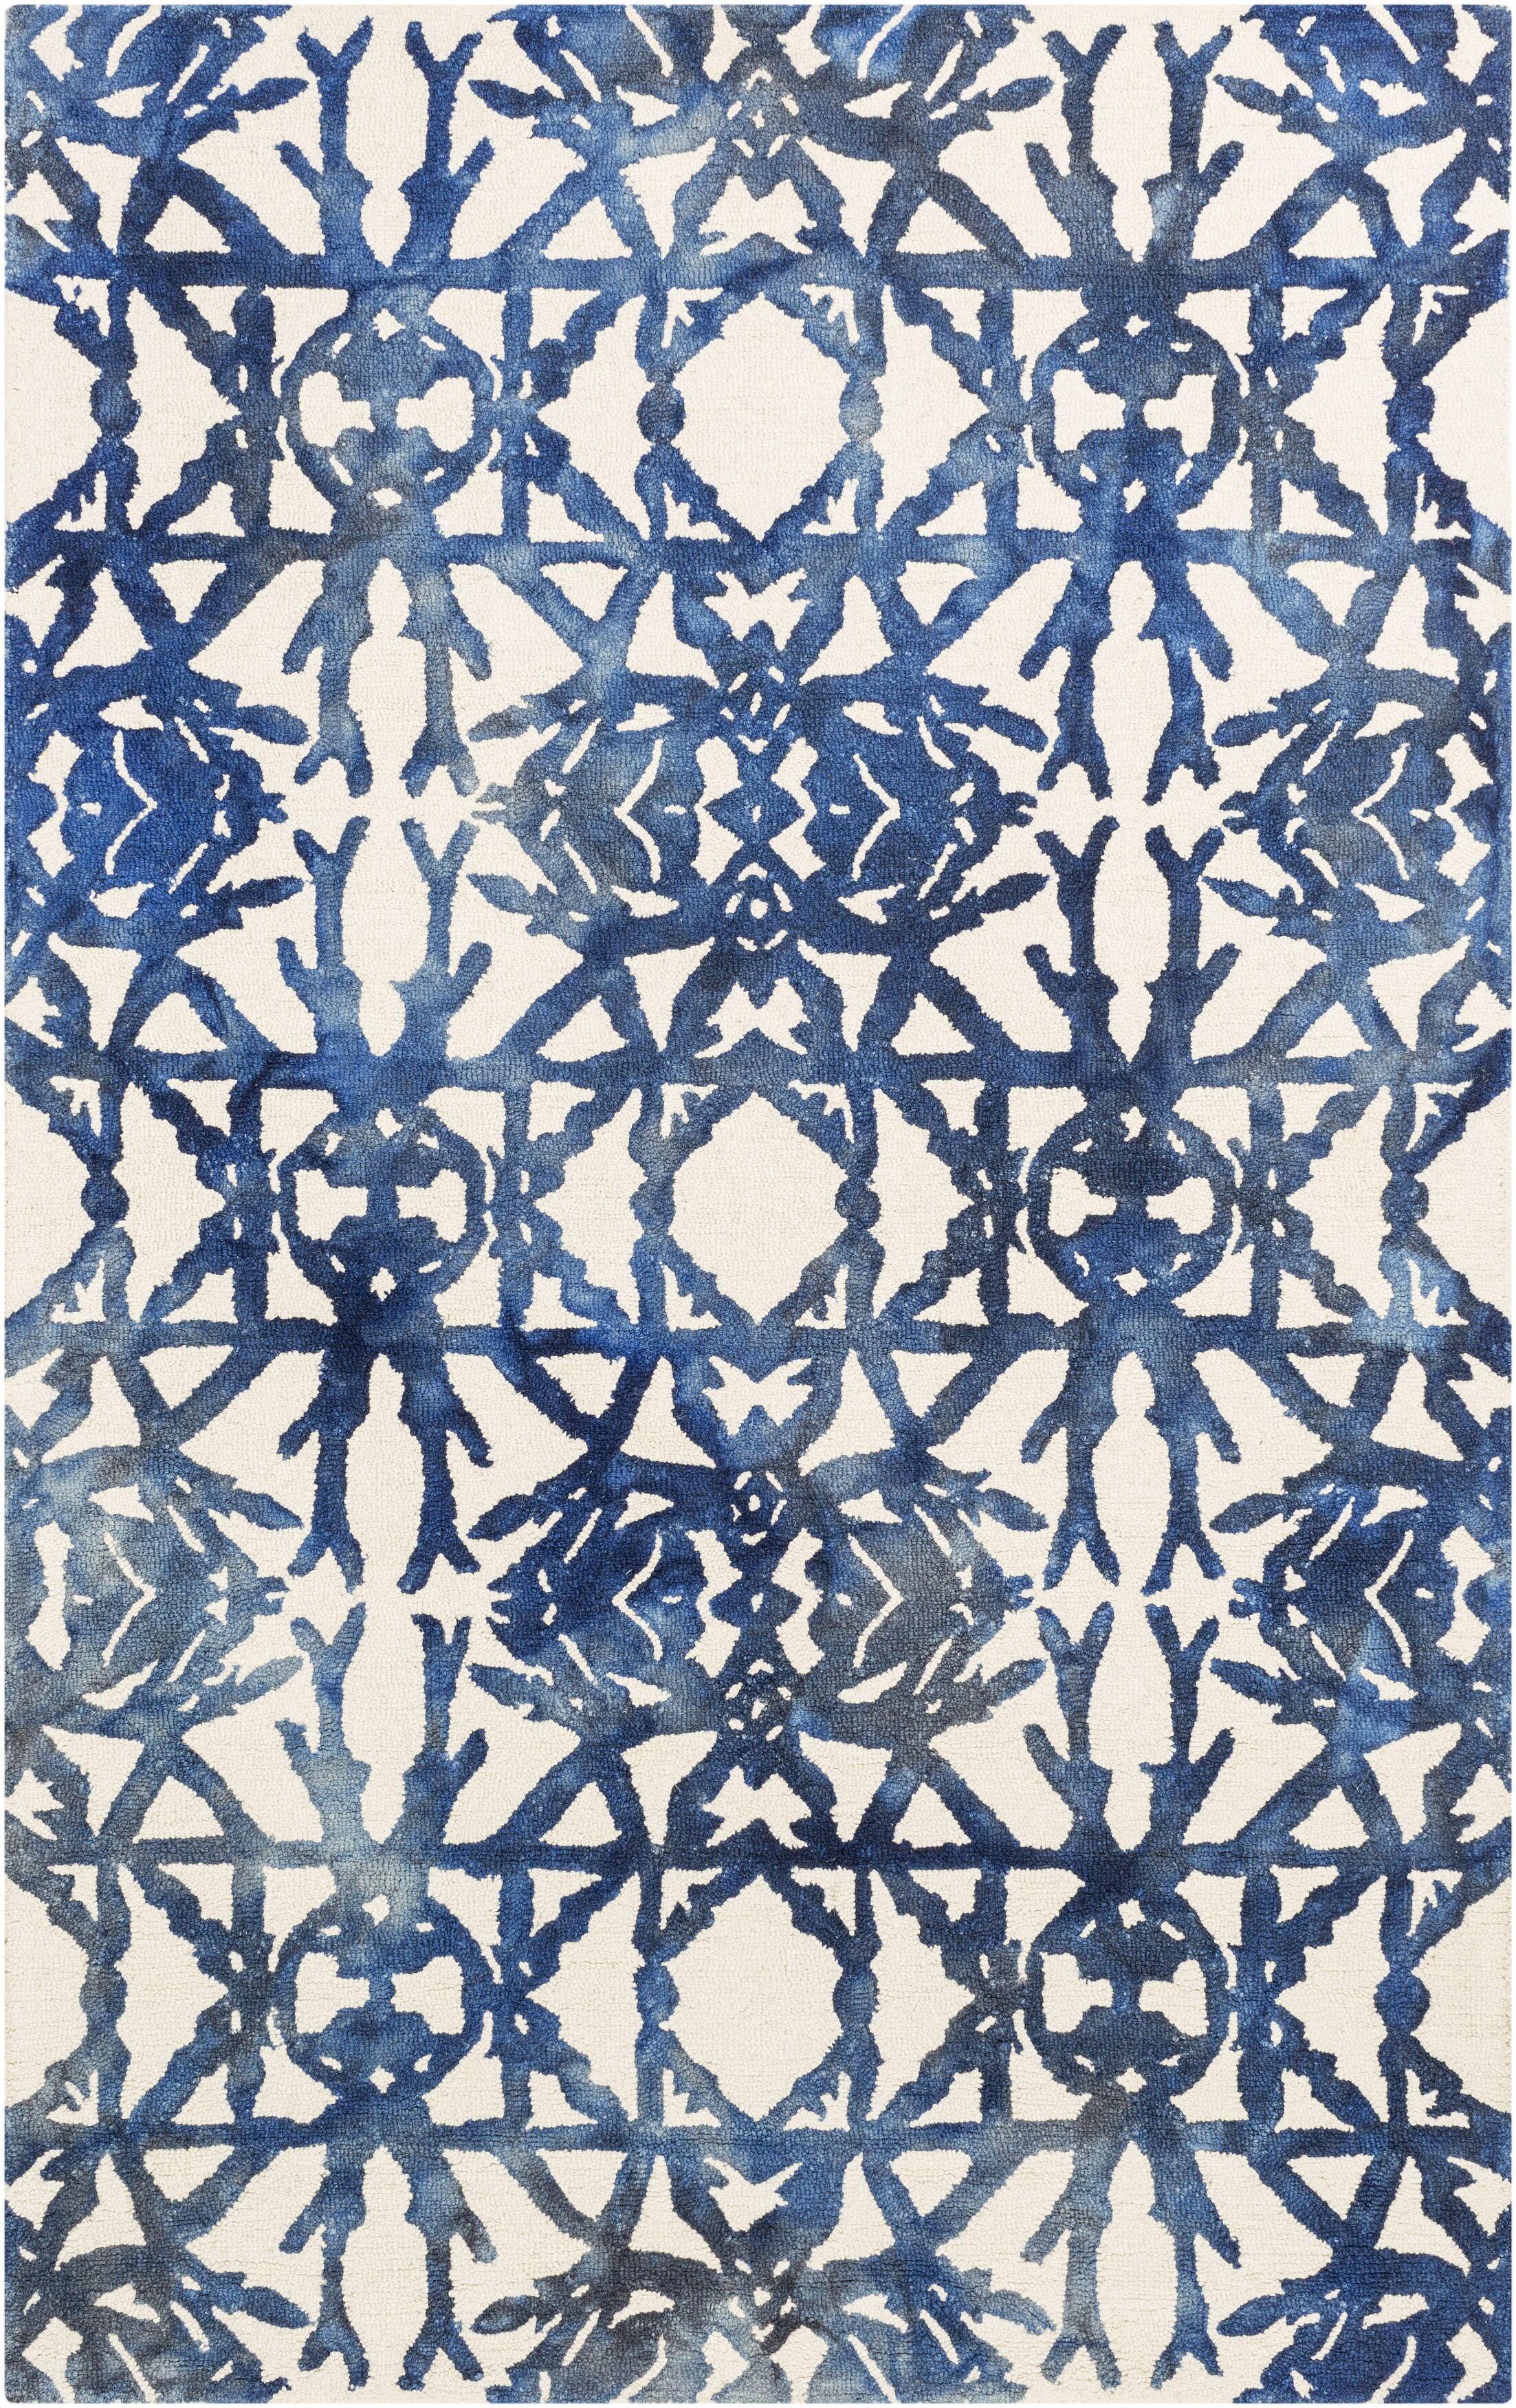 Glenmoor Hand-Tufted Navy/Off-White Area Rug Rug Size: Rectangle 8' x 10'